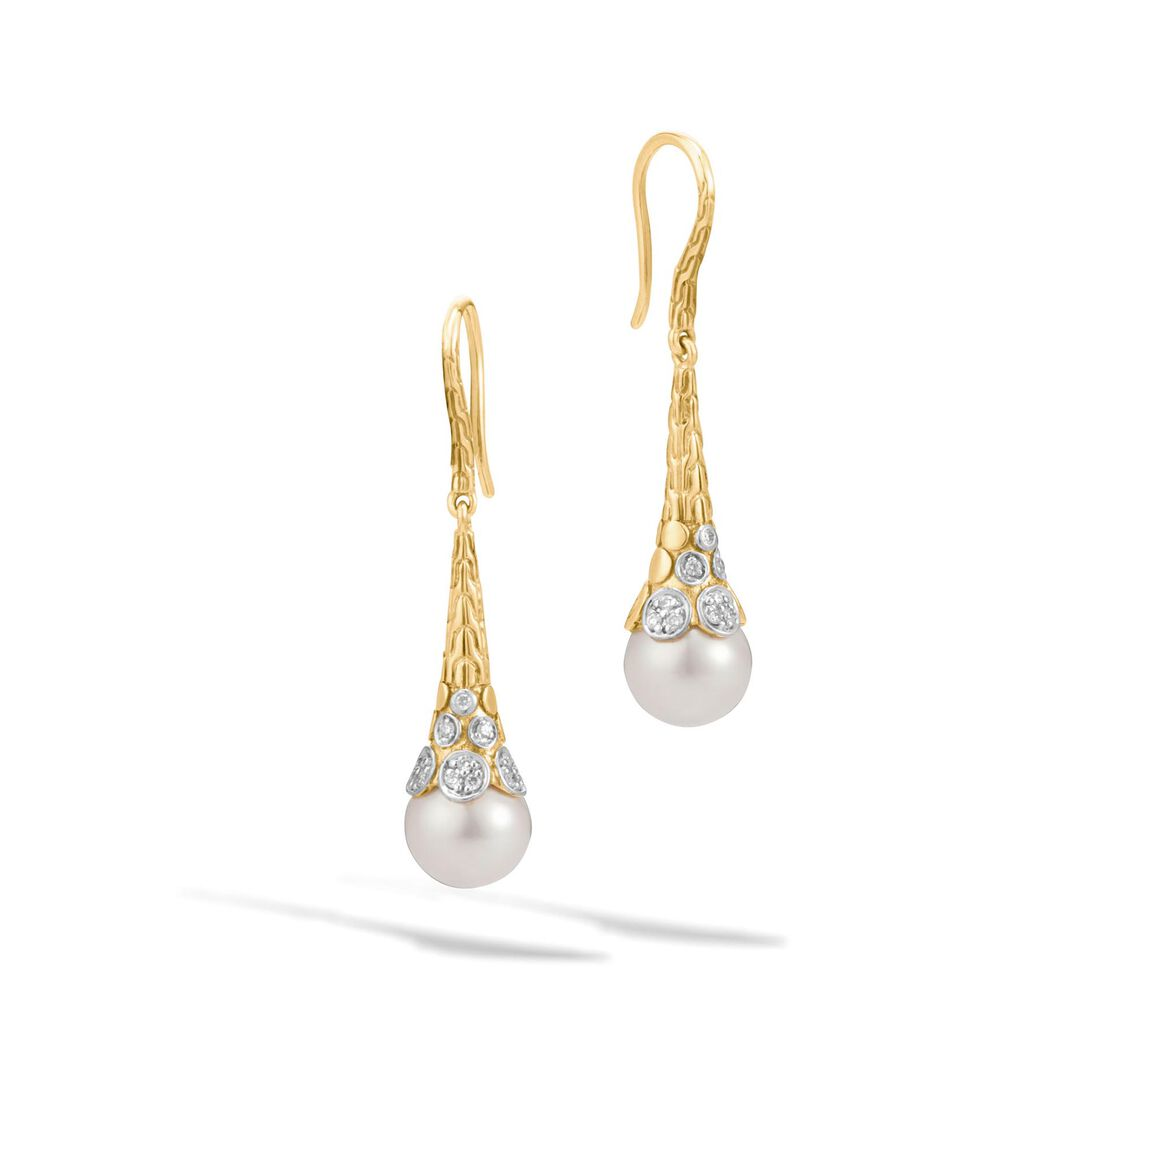 Dot Drop Earring in 18K Gold with 9MM Pearl and Diamonds